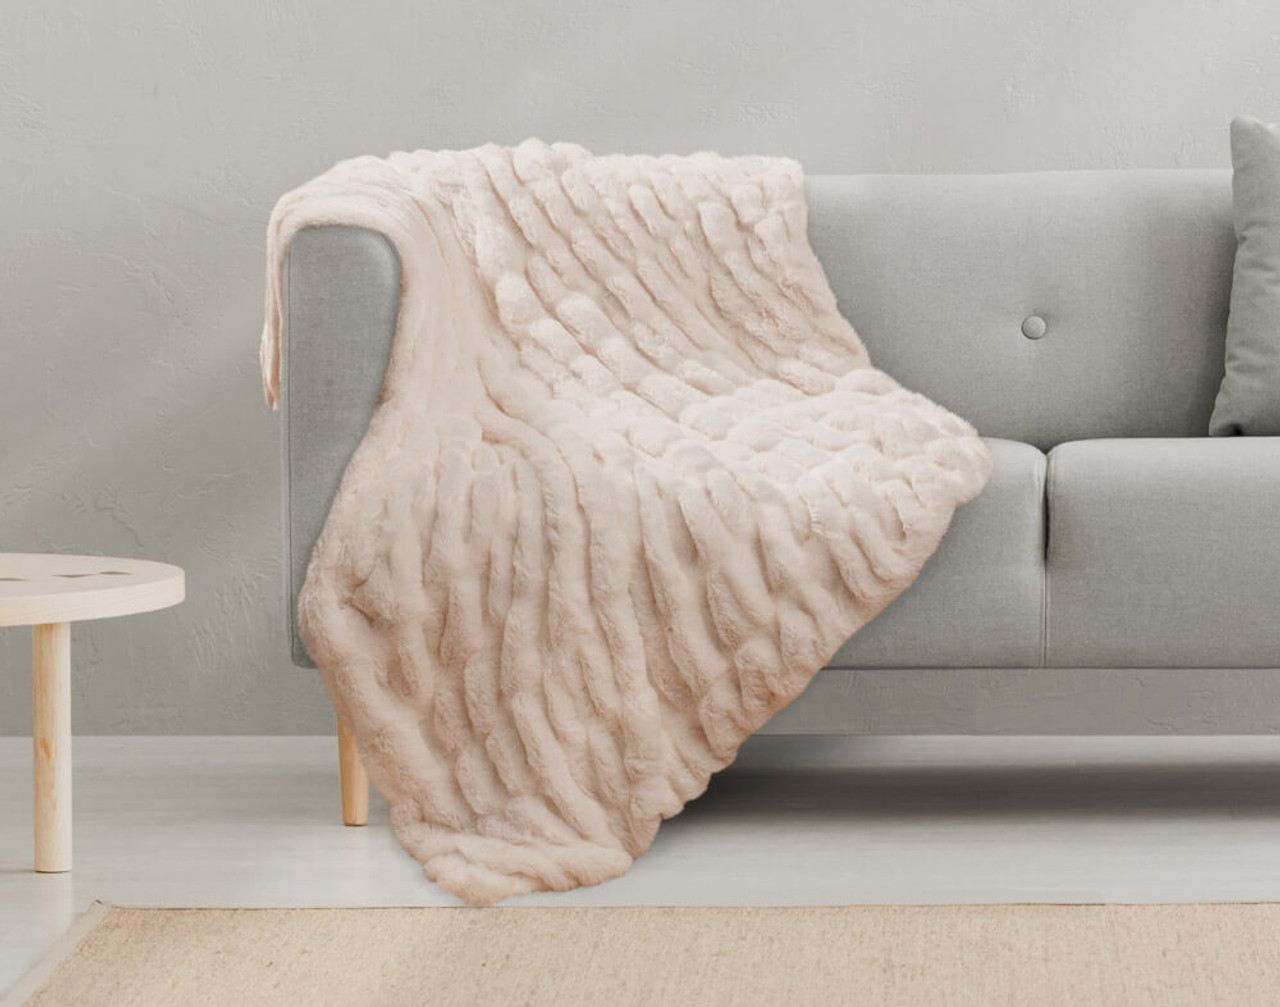 Our Rabbit Carved Faux Fur Throw in Blush Pink, draped over a couch.